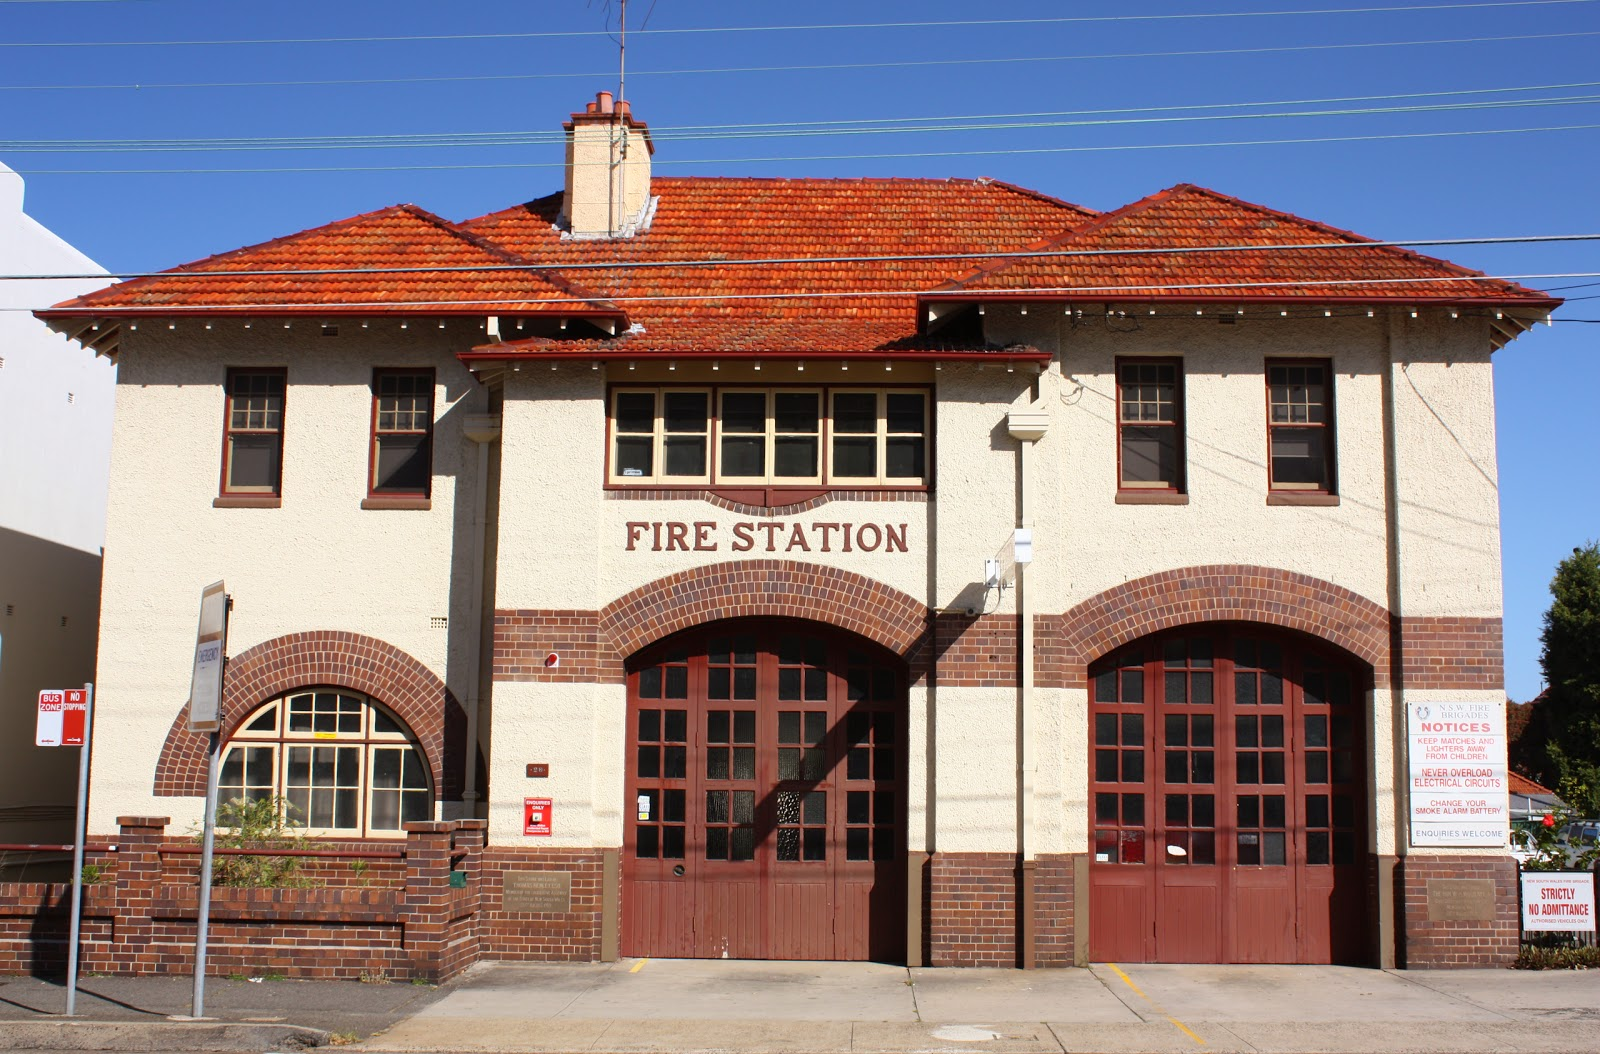 Drummoyne fire station NSW